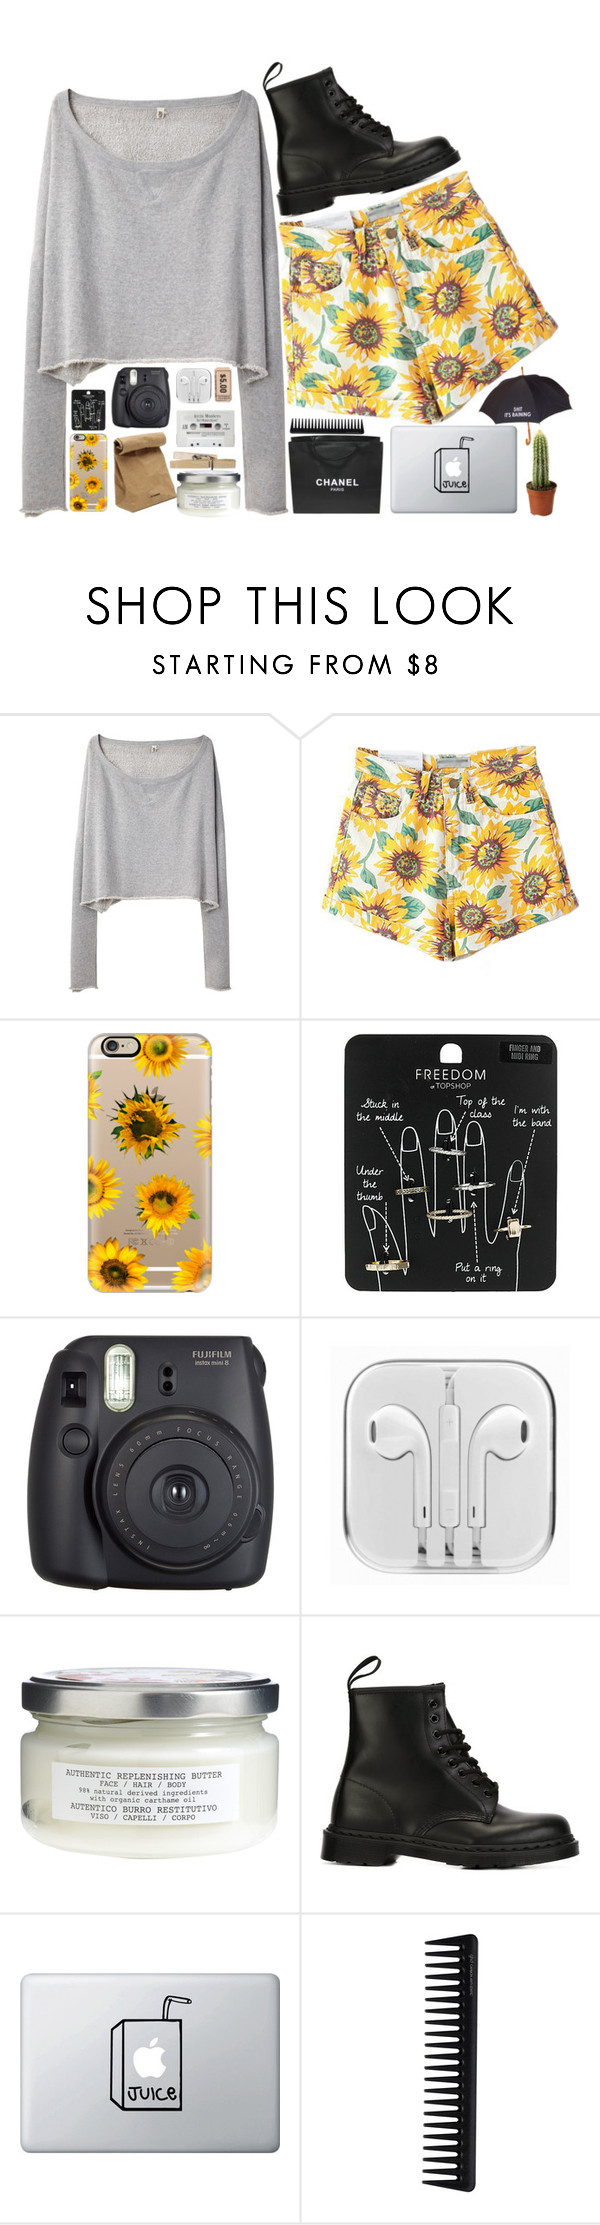 """""""mellow yellow"""" by alovelymisfit ❤ liked on Polyvore featuring R13, Casetify, Topshop, Fuji, Jil Sander, Davines, Dr. Martens, Chanel, GHD and Novelty"""